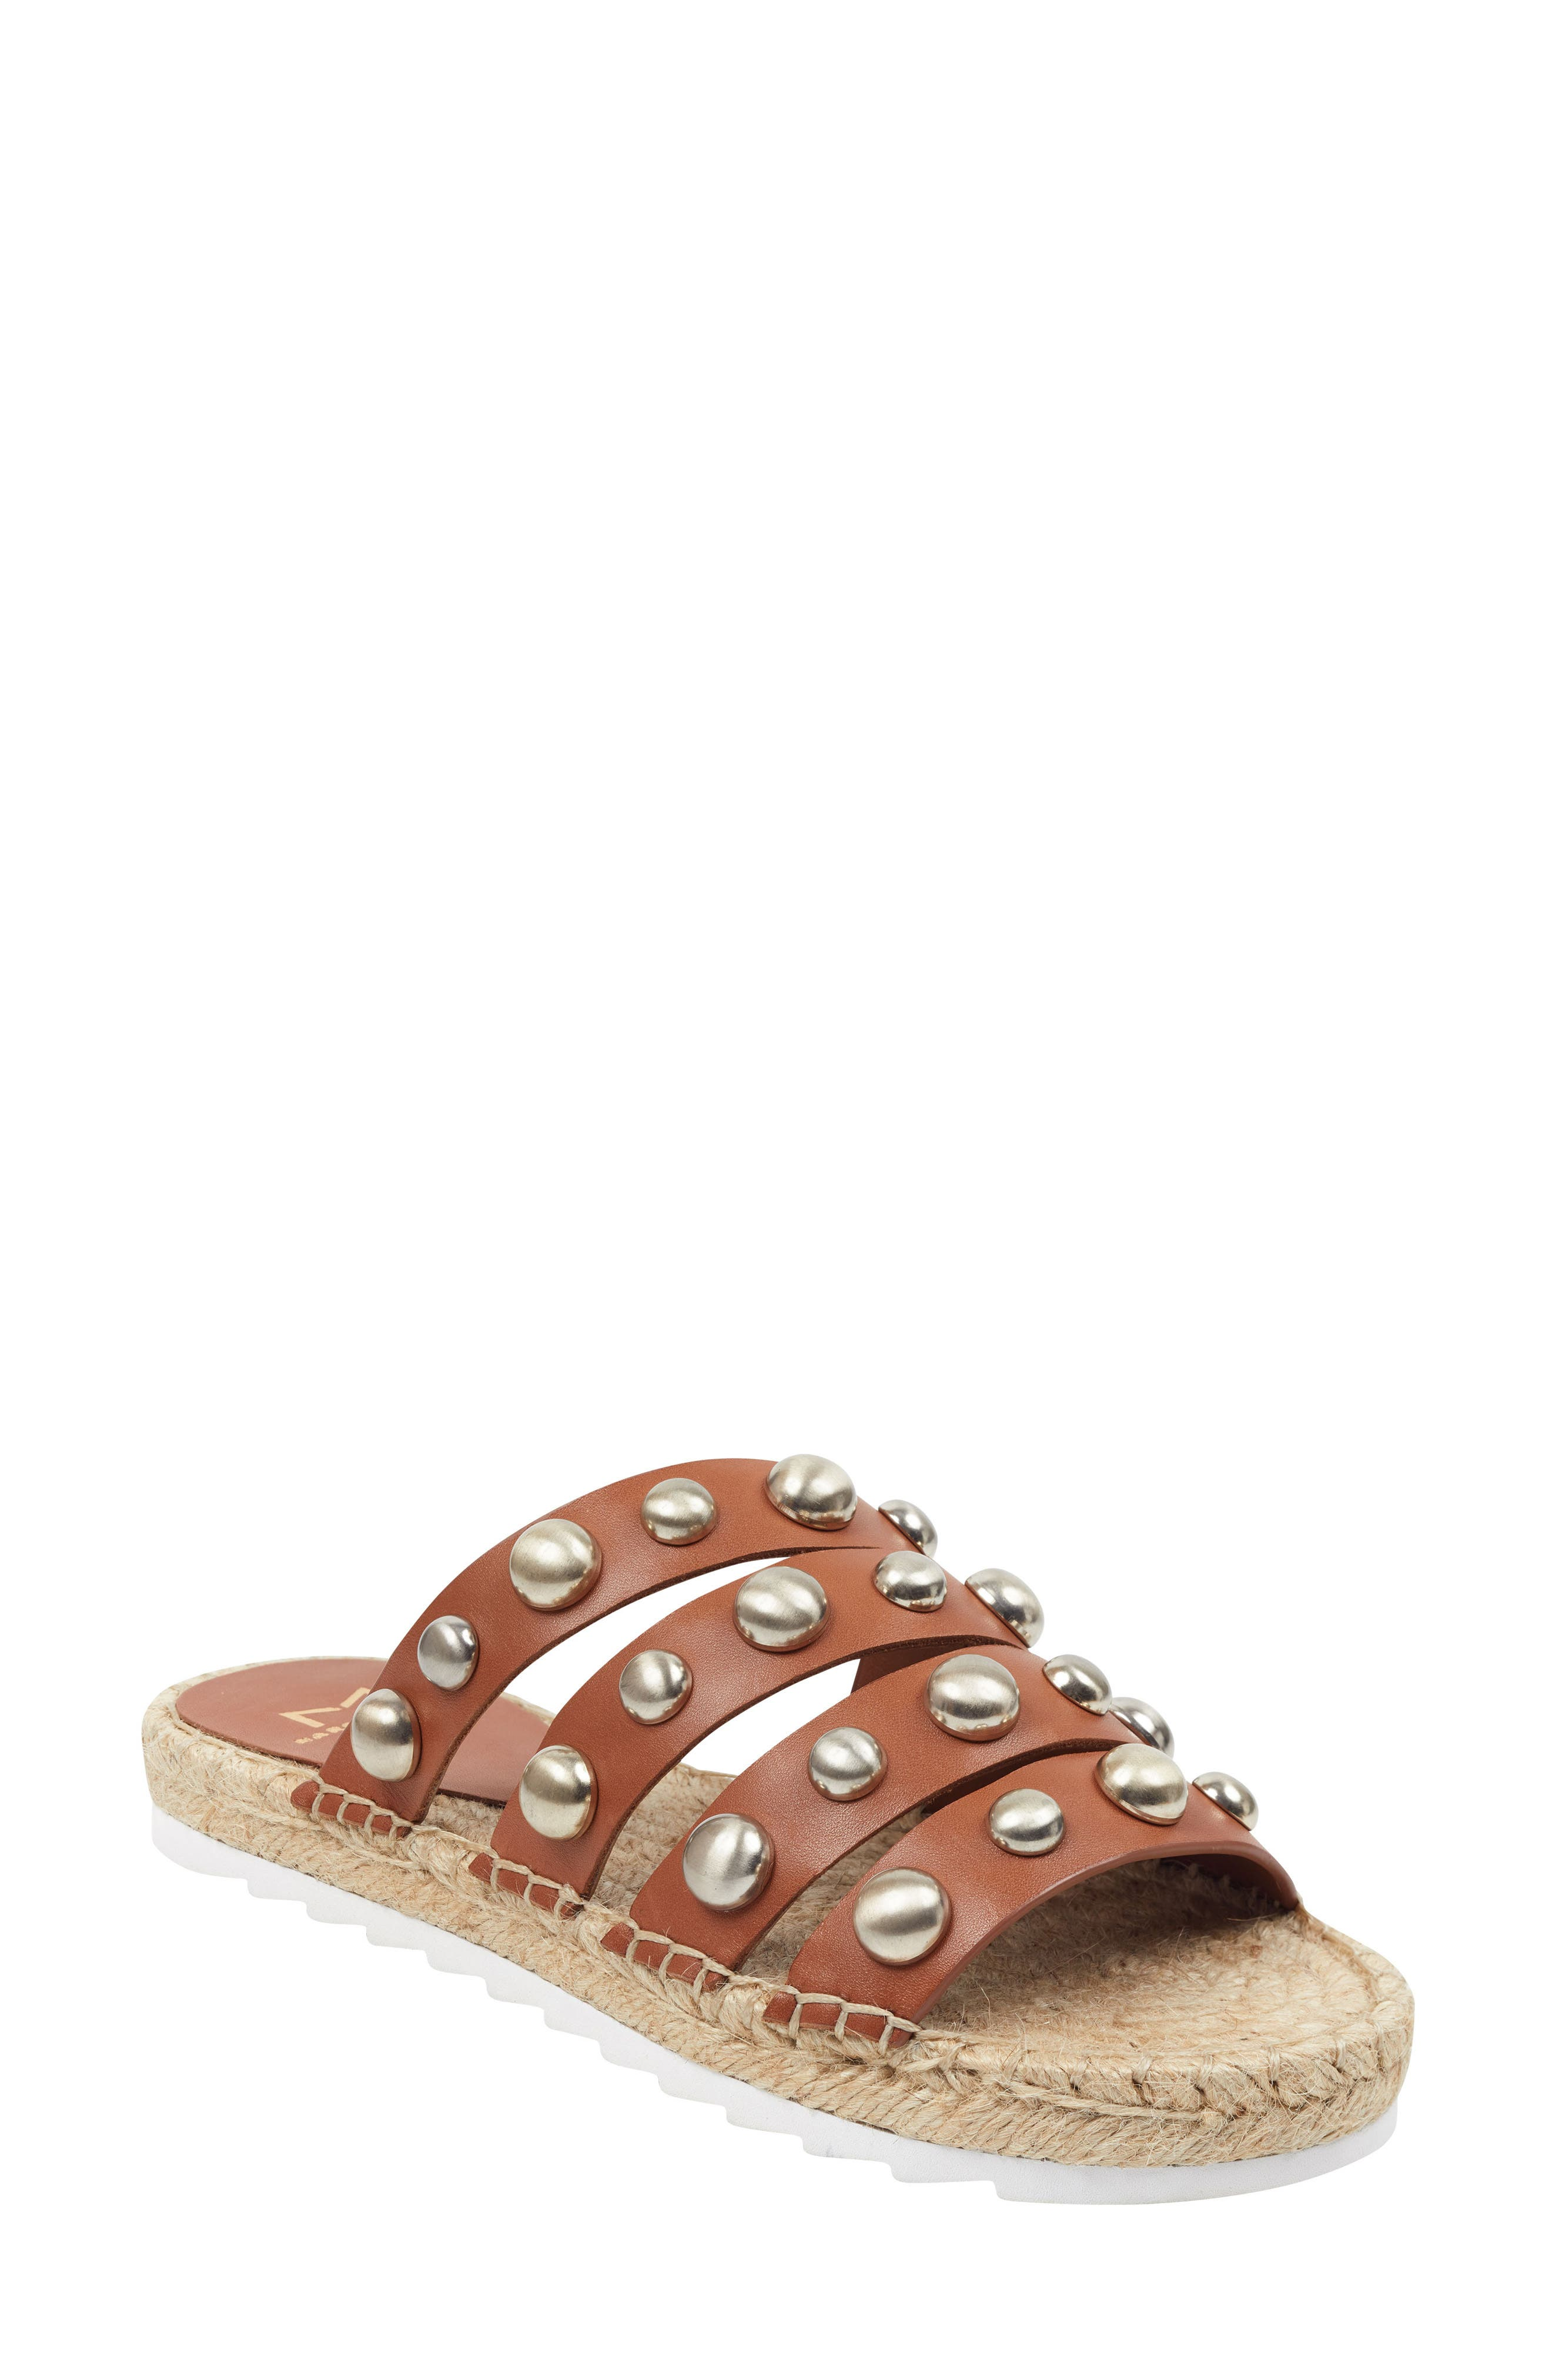 Marc Fisher Ltd Brandie Strappy Studded Slide Sandal, Brown